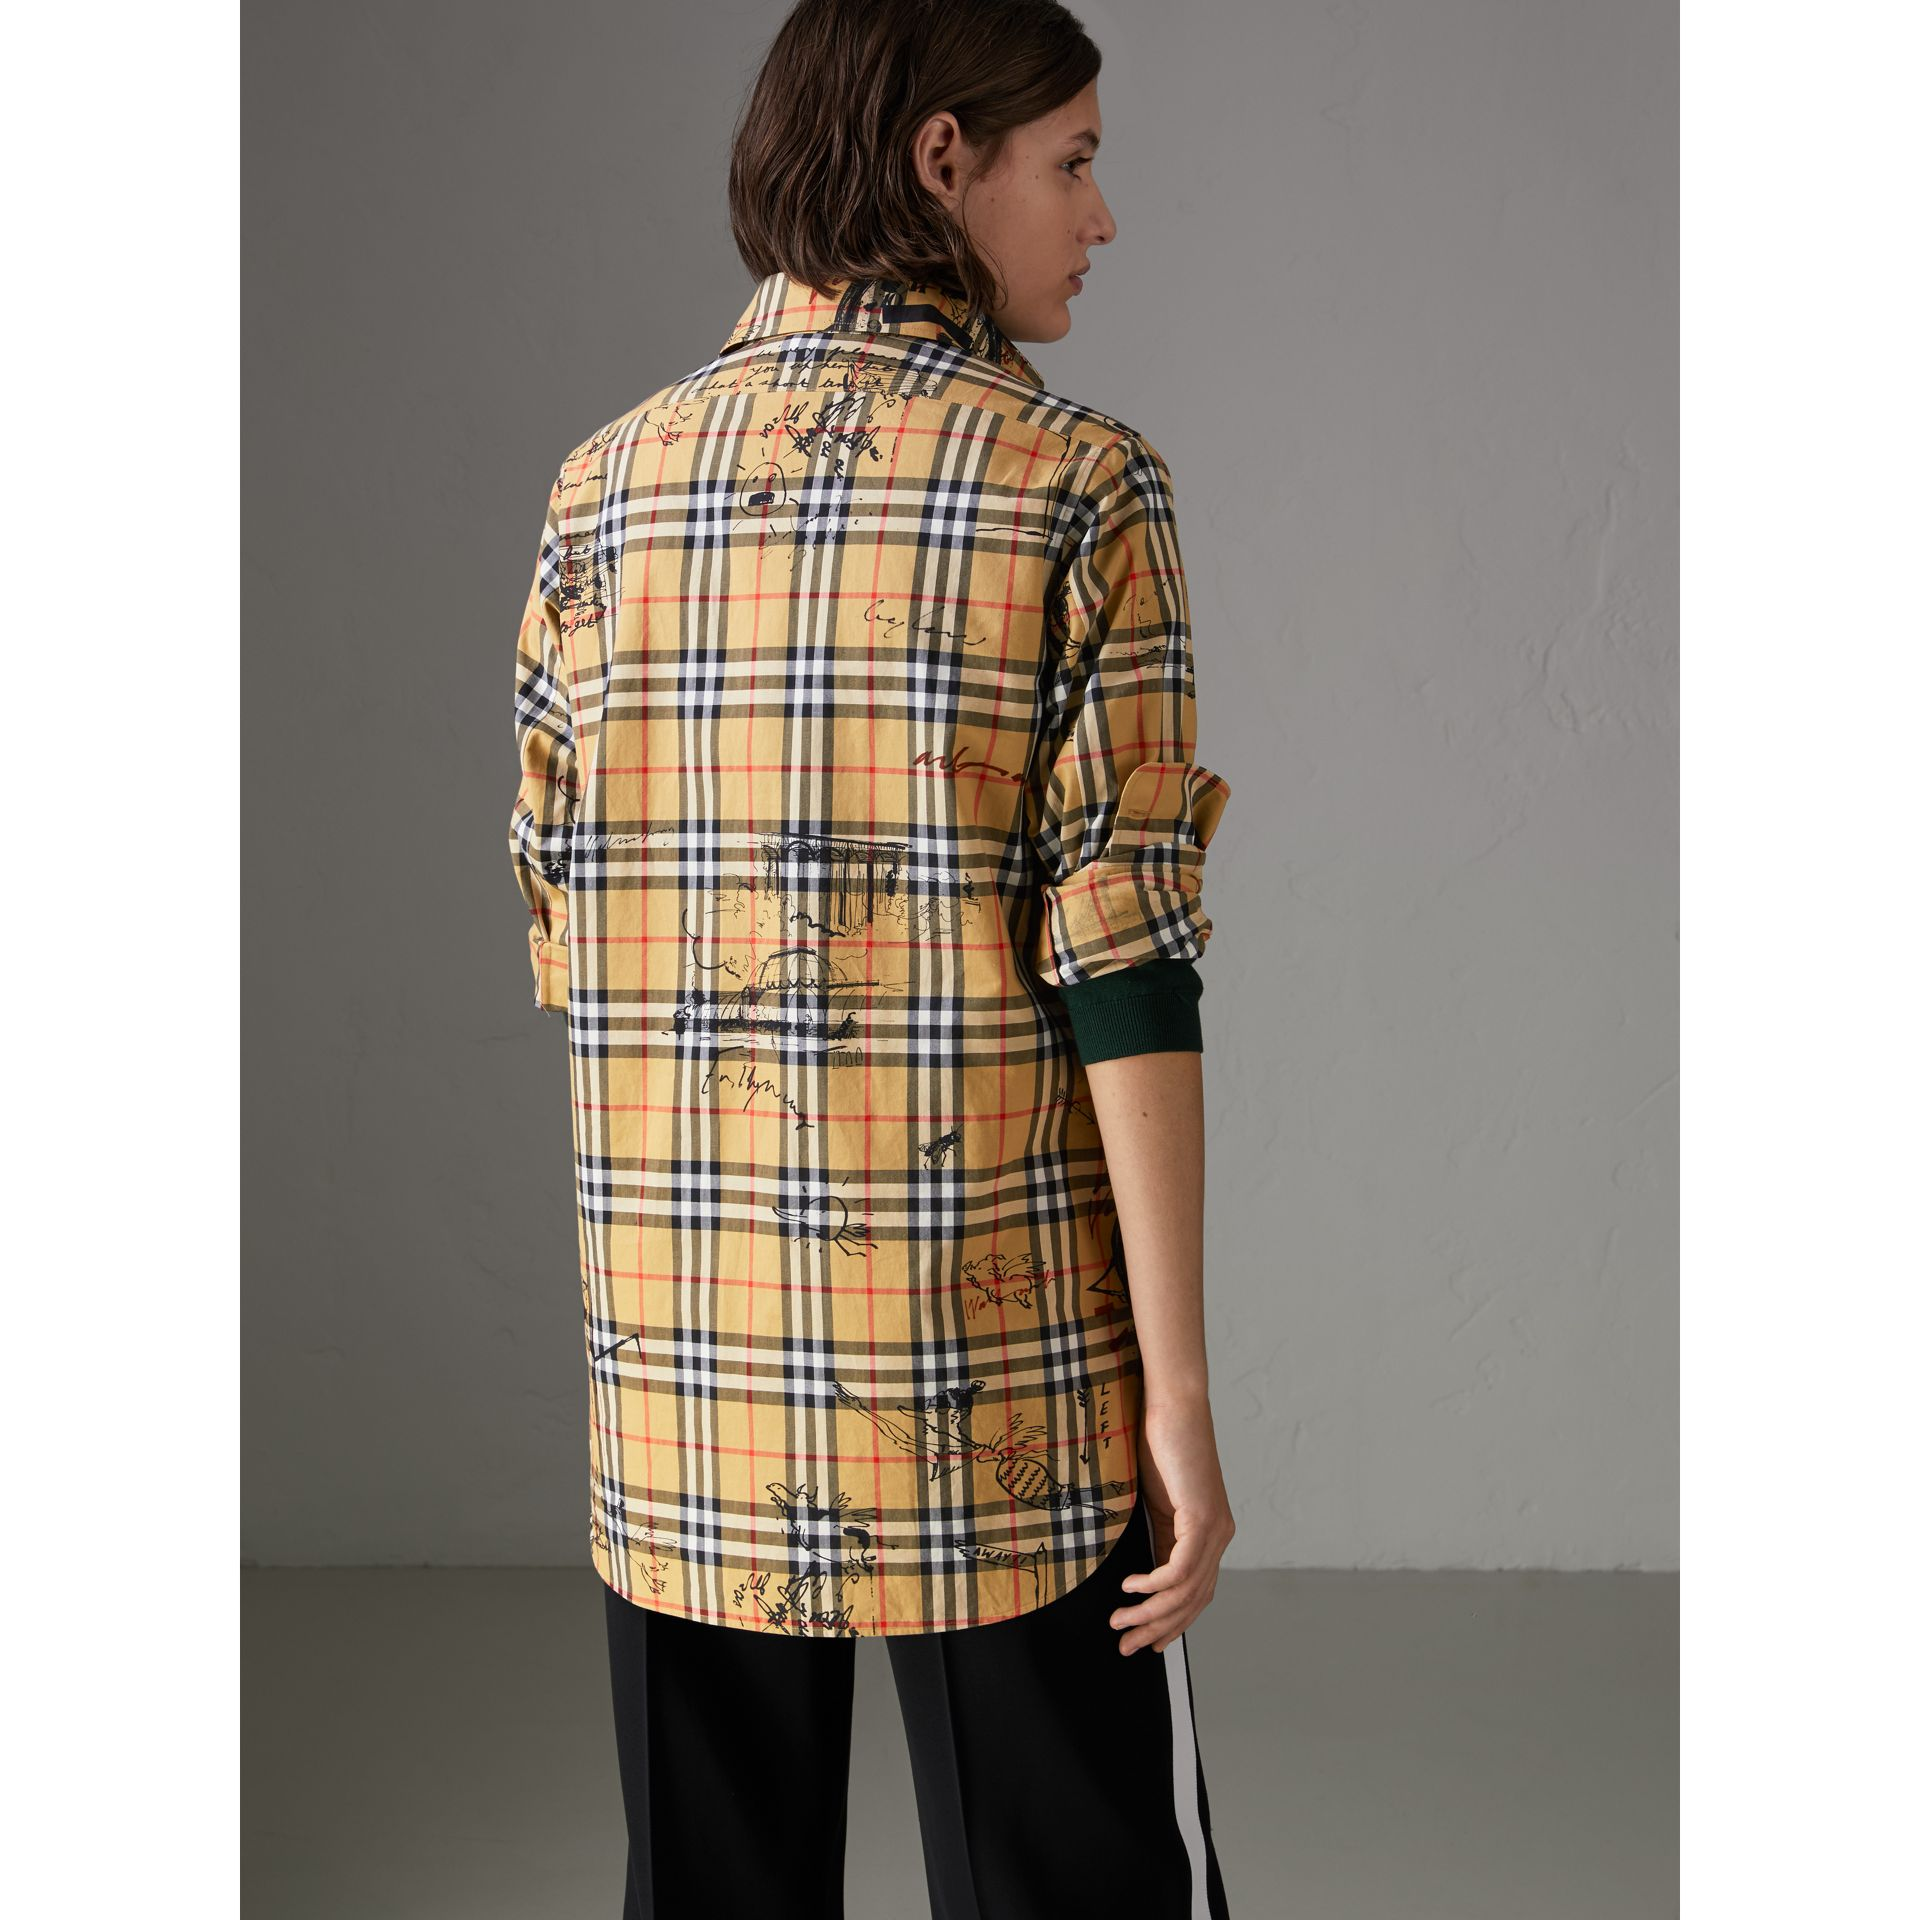 Postcard Print Vintage Check Tunic Shirt in Antique Yellow - Women | Burberry United States - gallery image 2